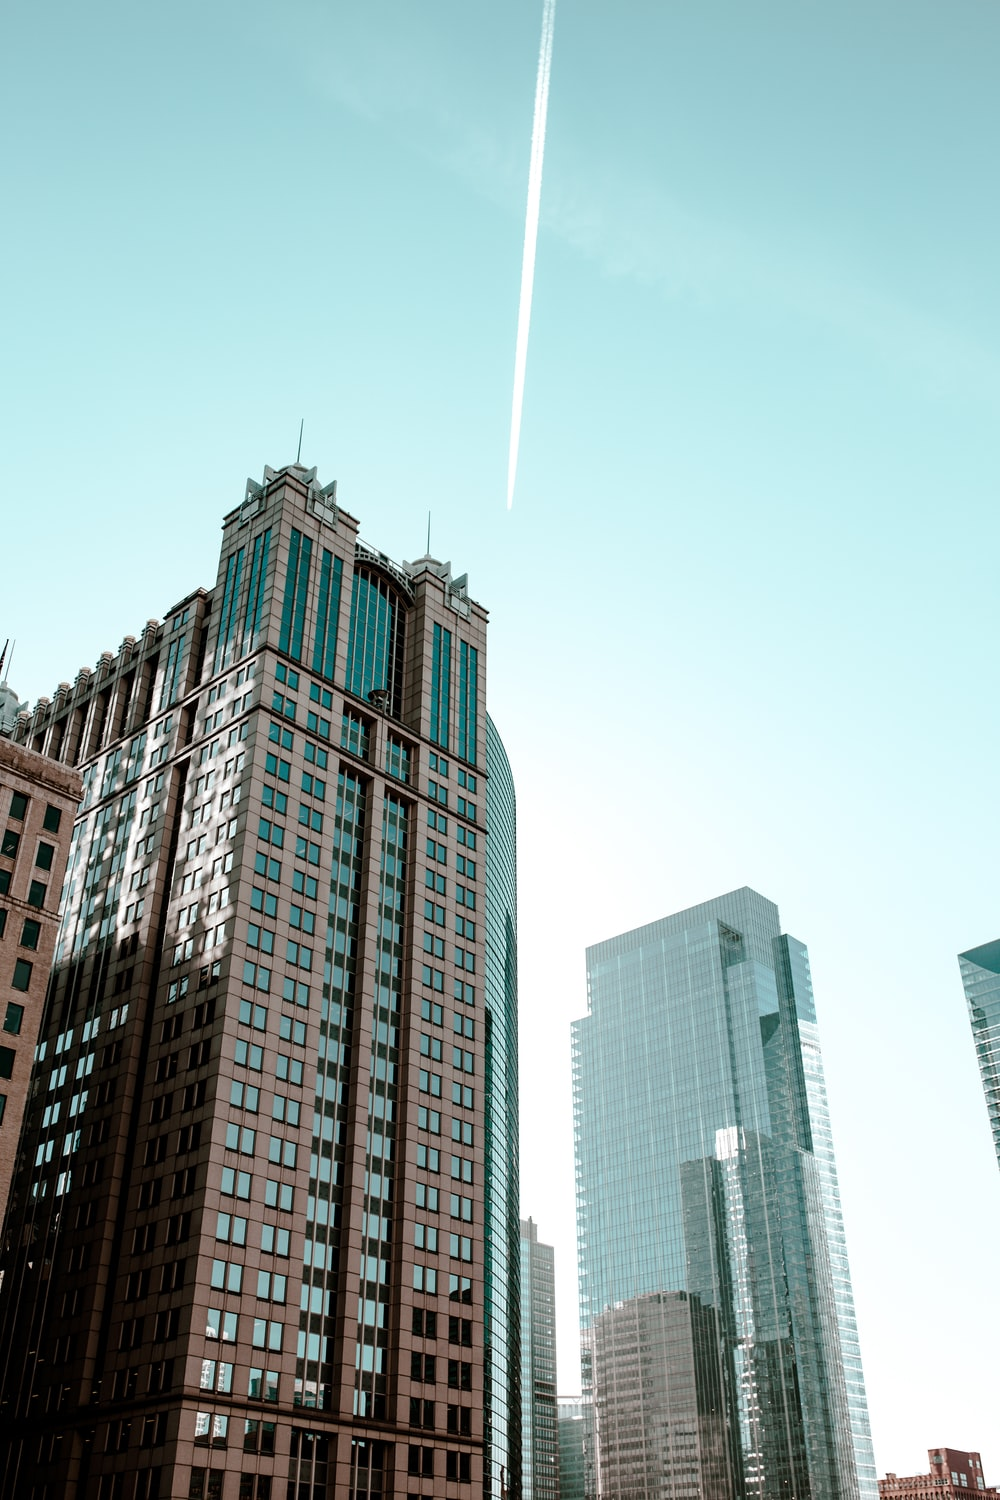 low angle photography of curtain wall buildings taken under clear sky